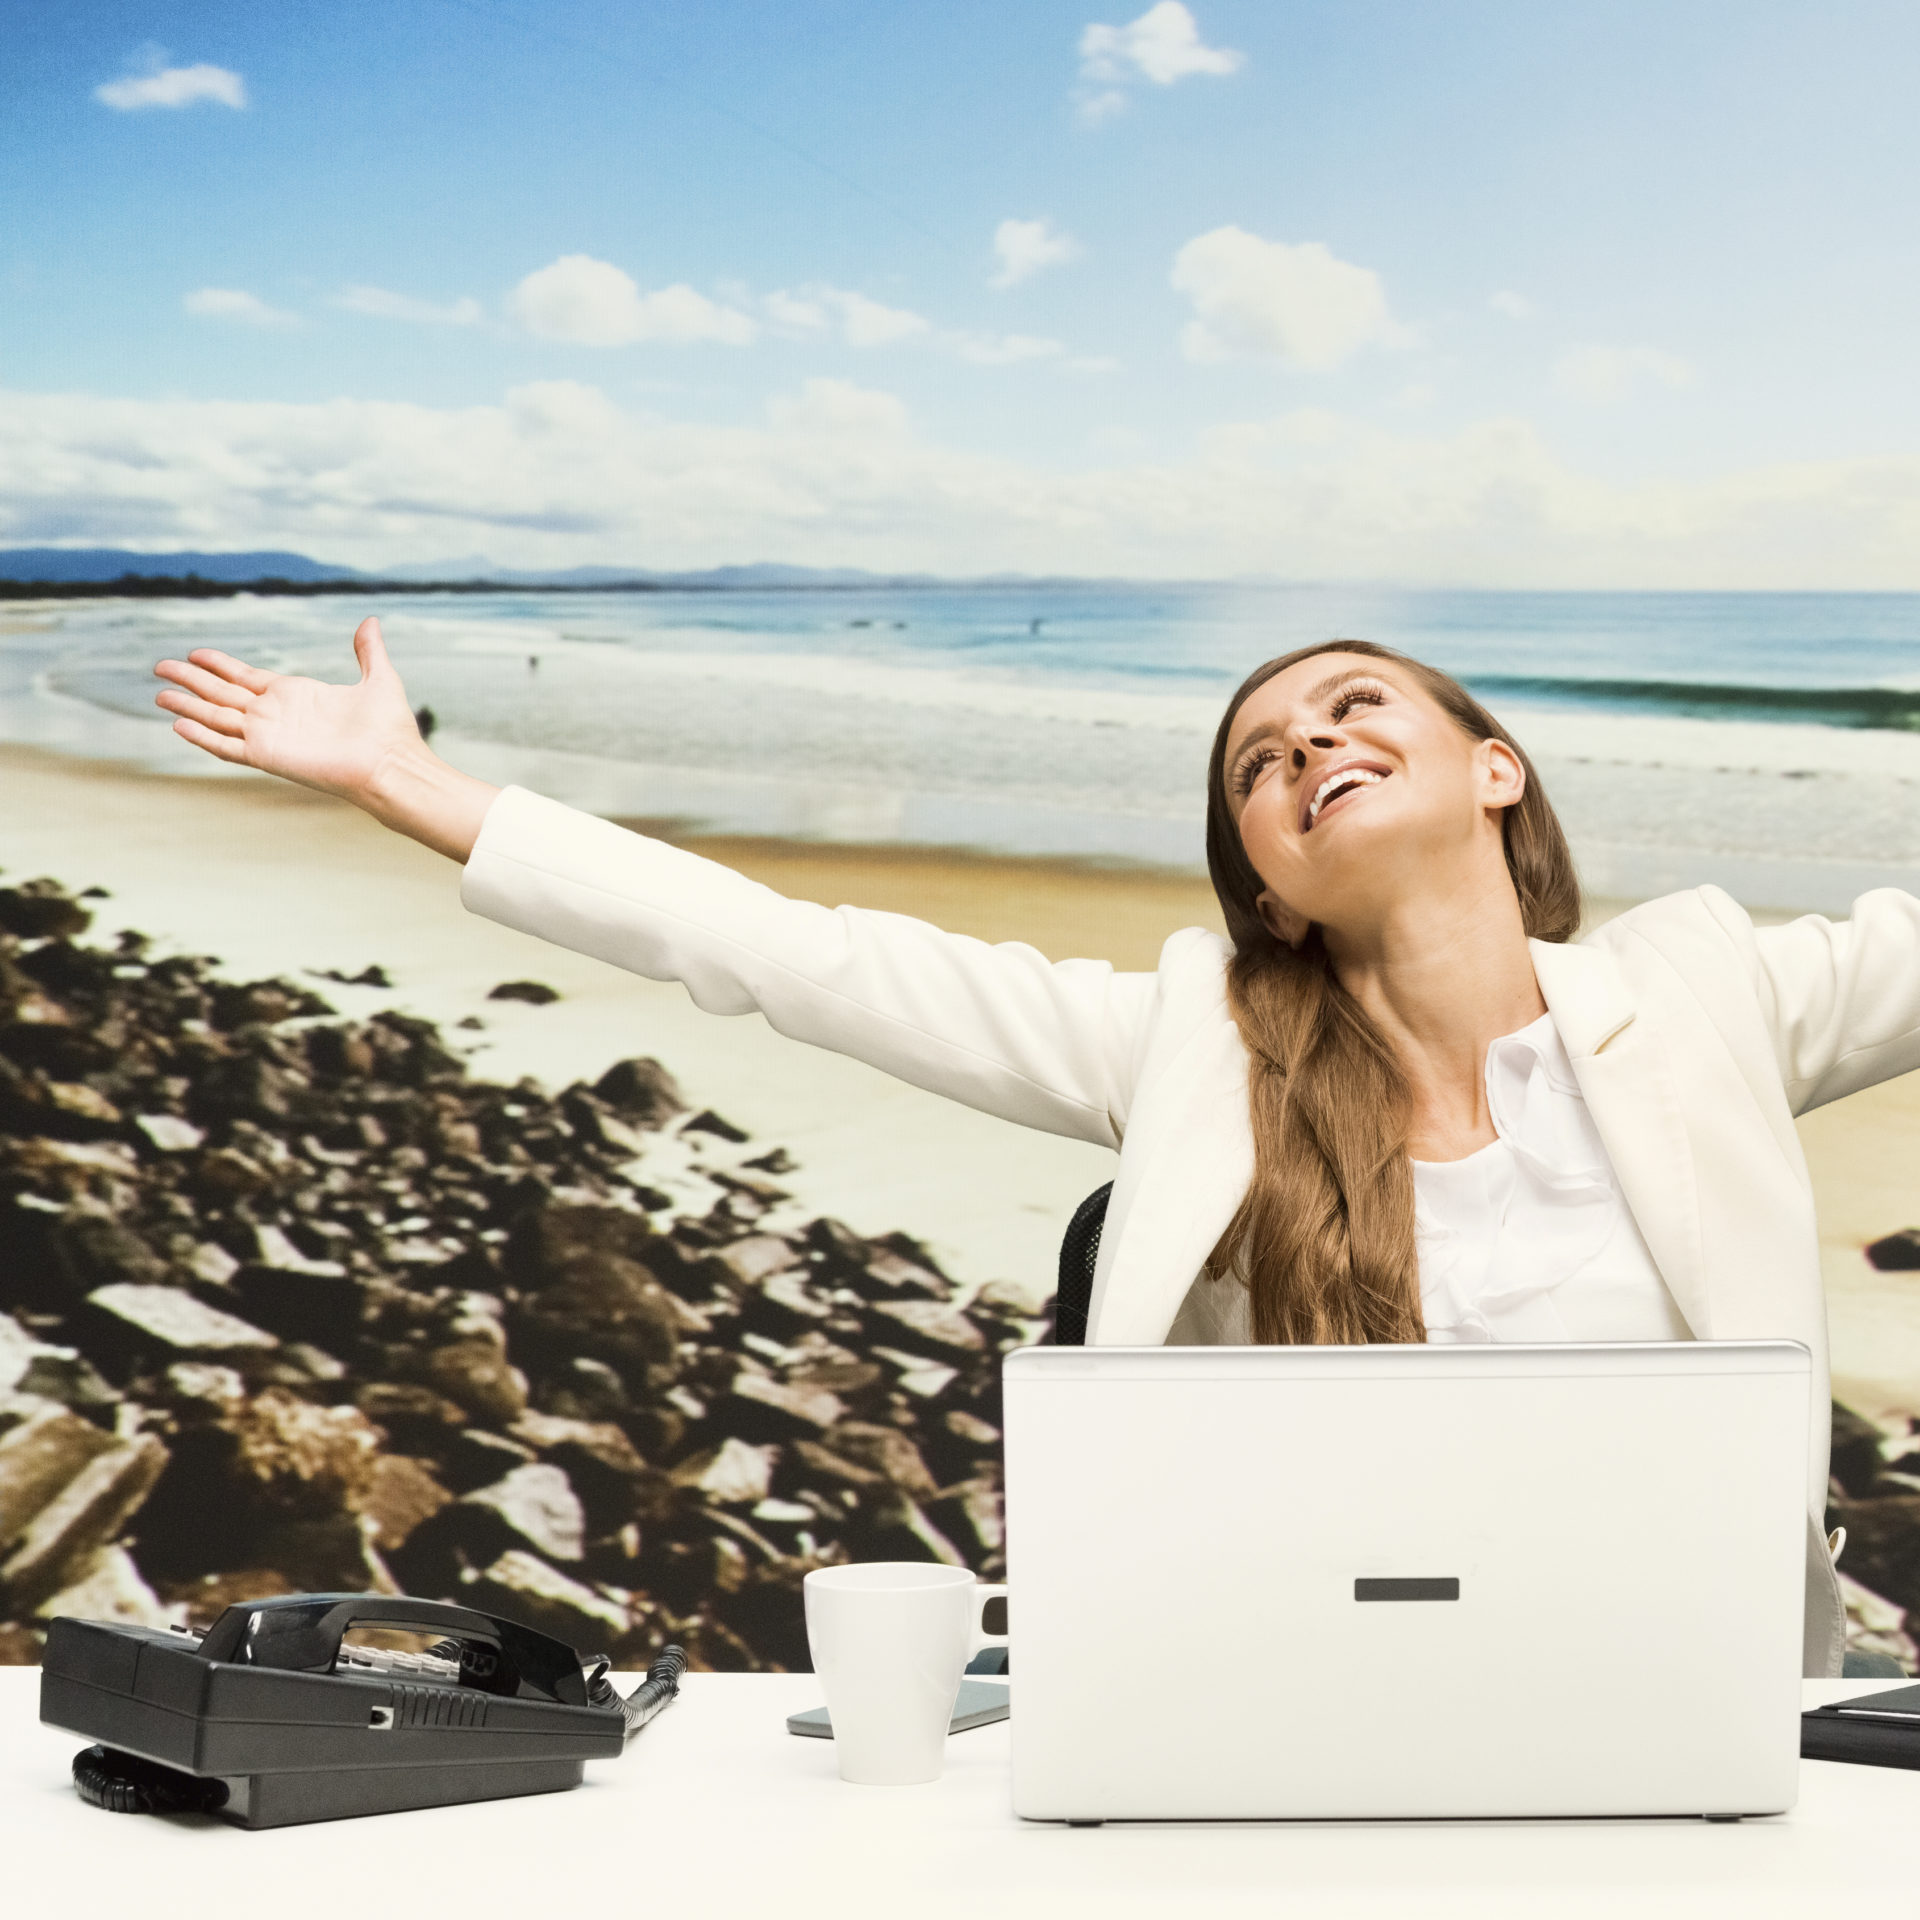 cheerful businesswoman with arms outstretched